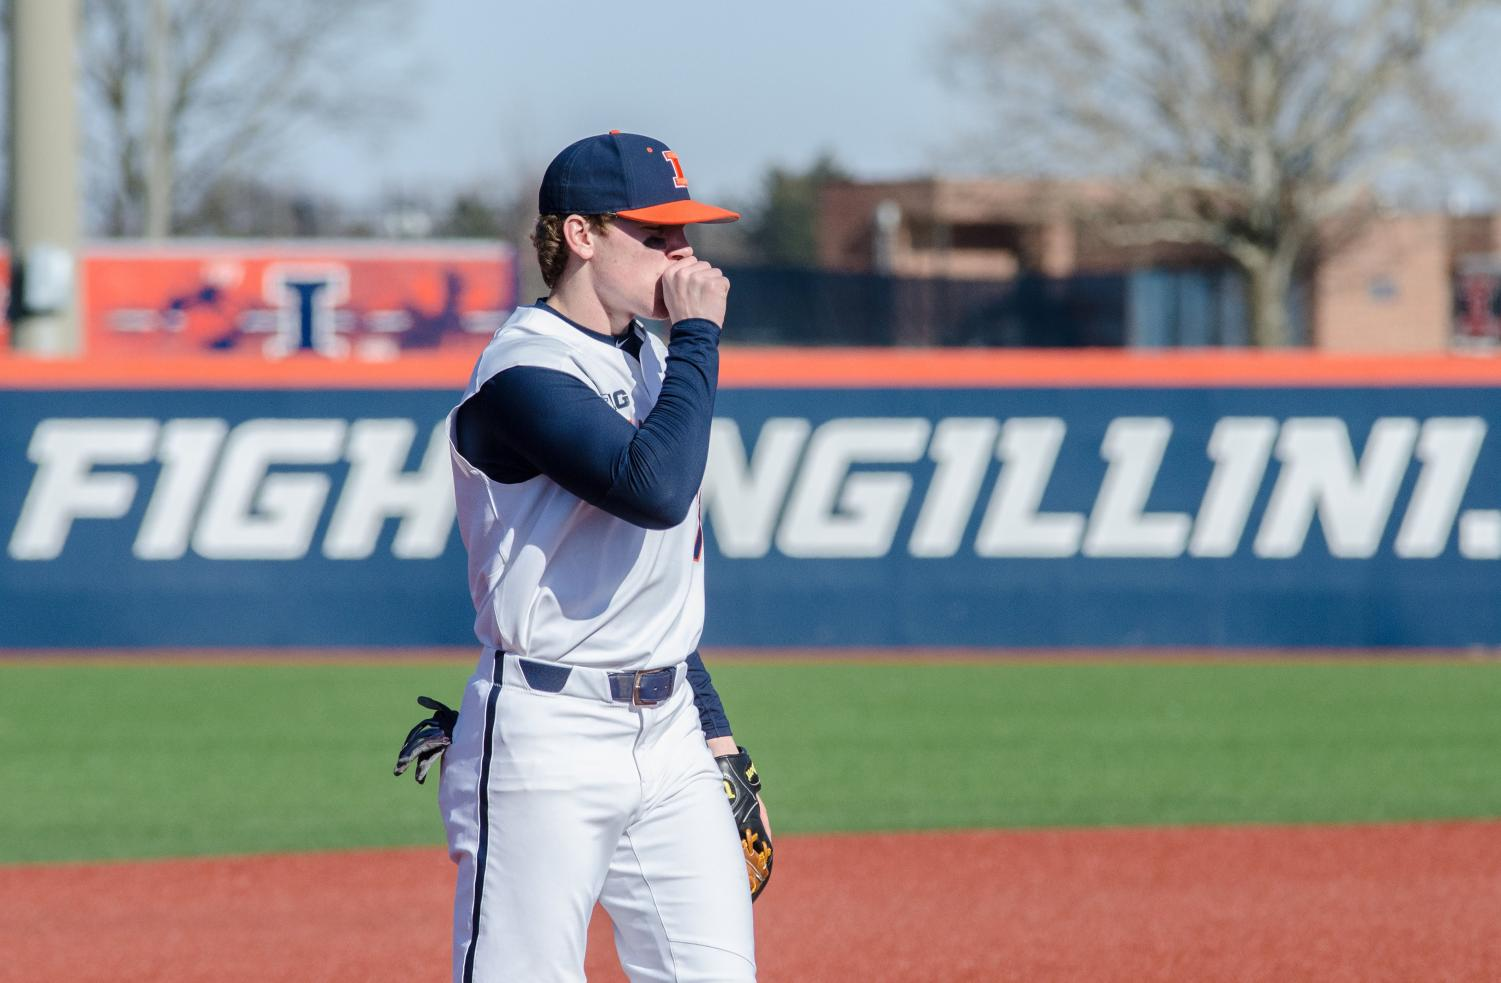 Grant Van Scoy warms his throwing hand during Illinois' 9-6 win against Milwaukee on Wednesday, March 14.